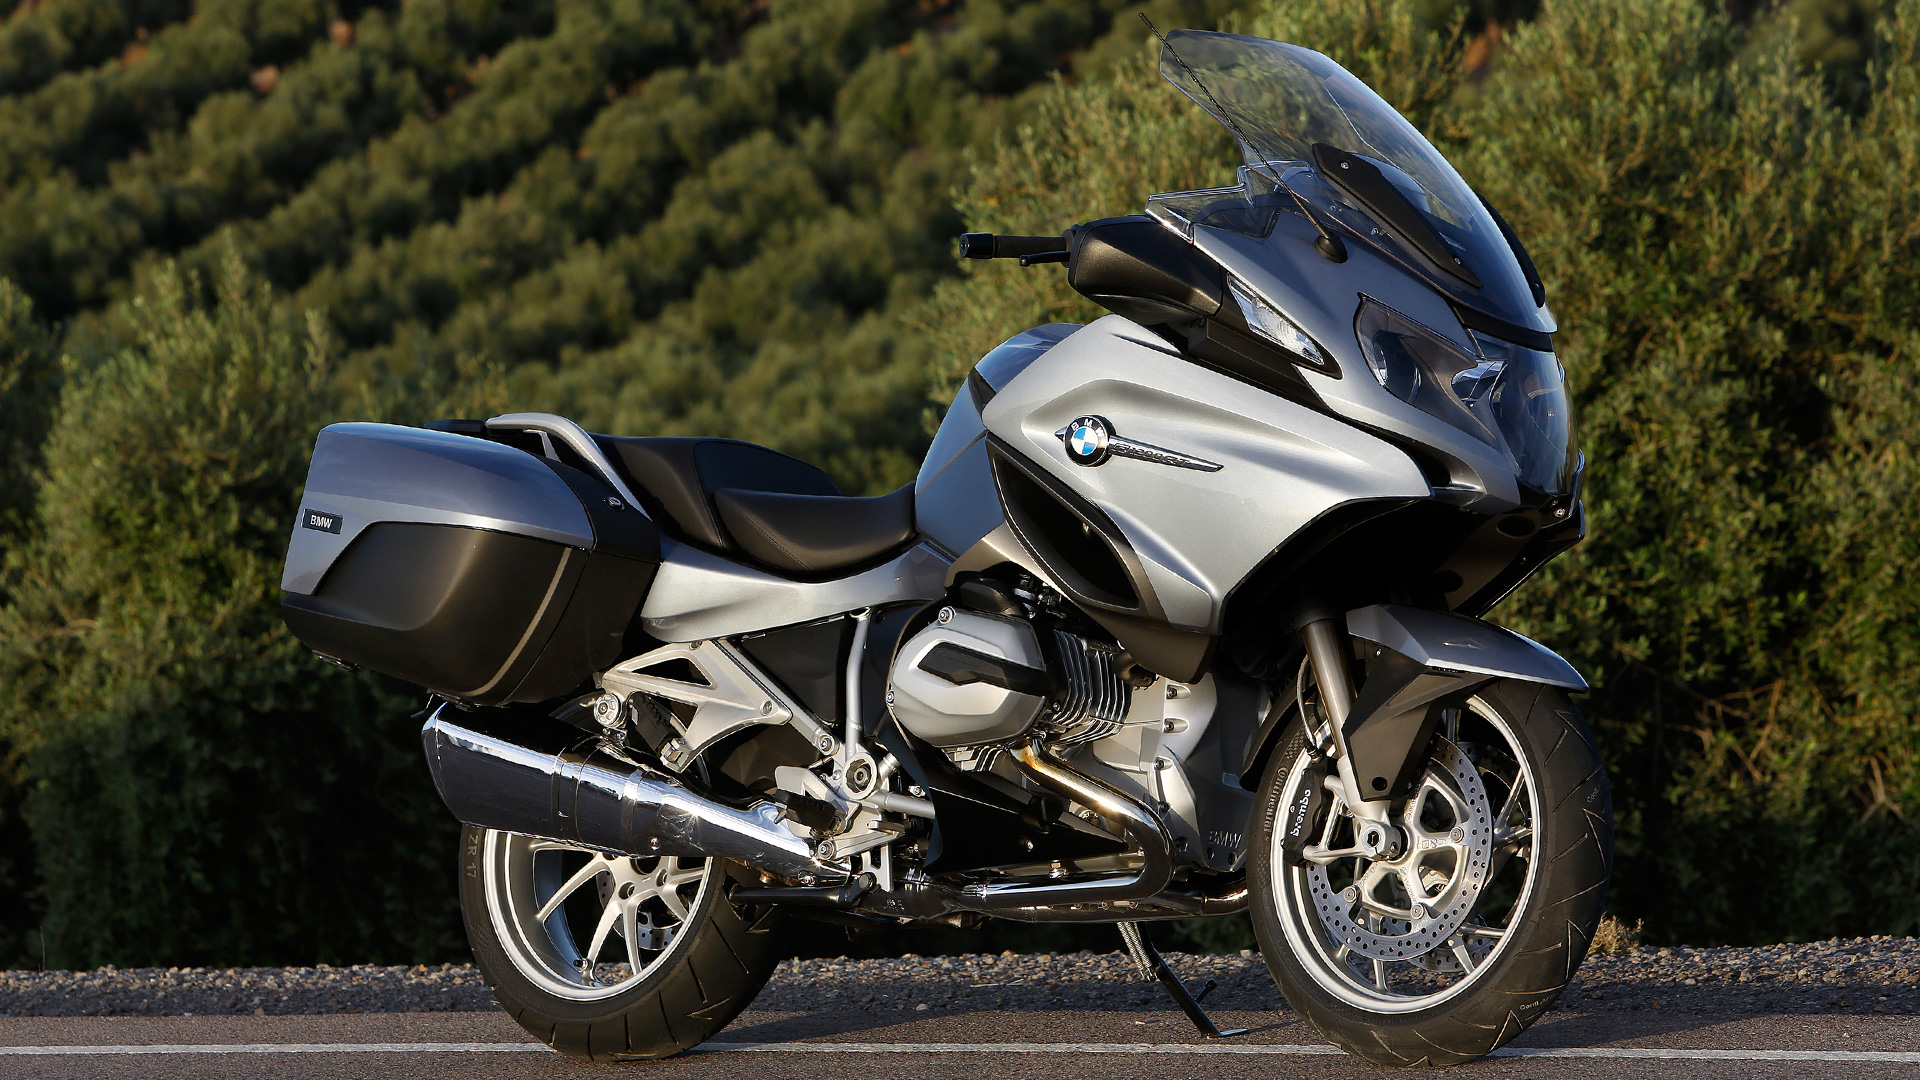 bmw r 1200 rt 2017 standard bike photos overdrive. Black Bedroom Furniture Sets. Home Design Ideas